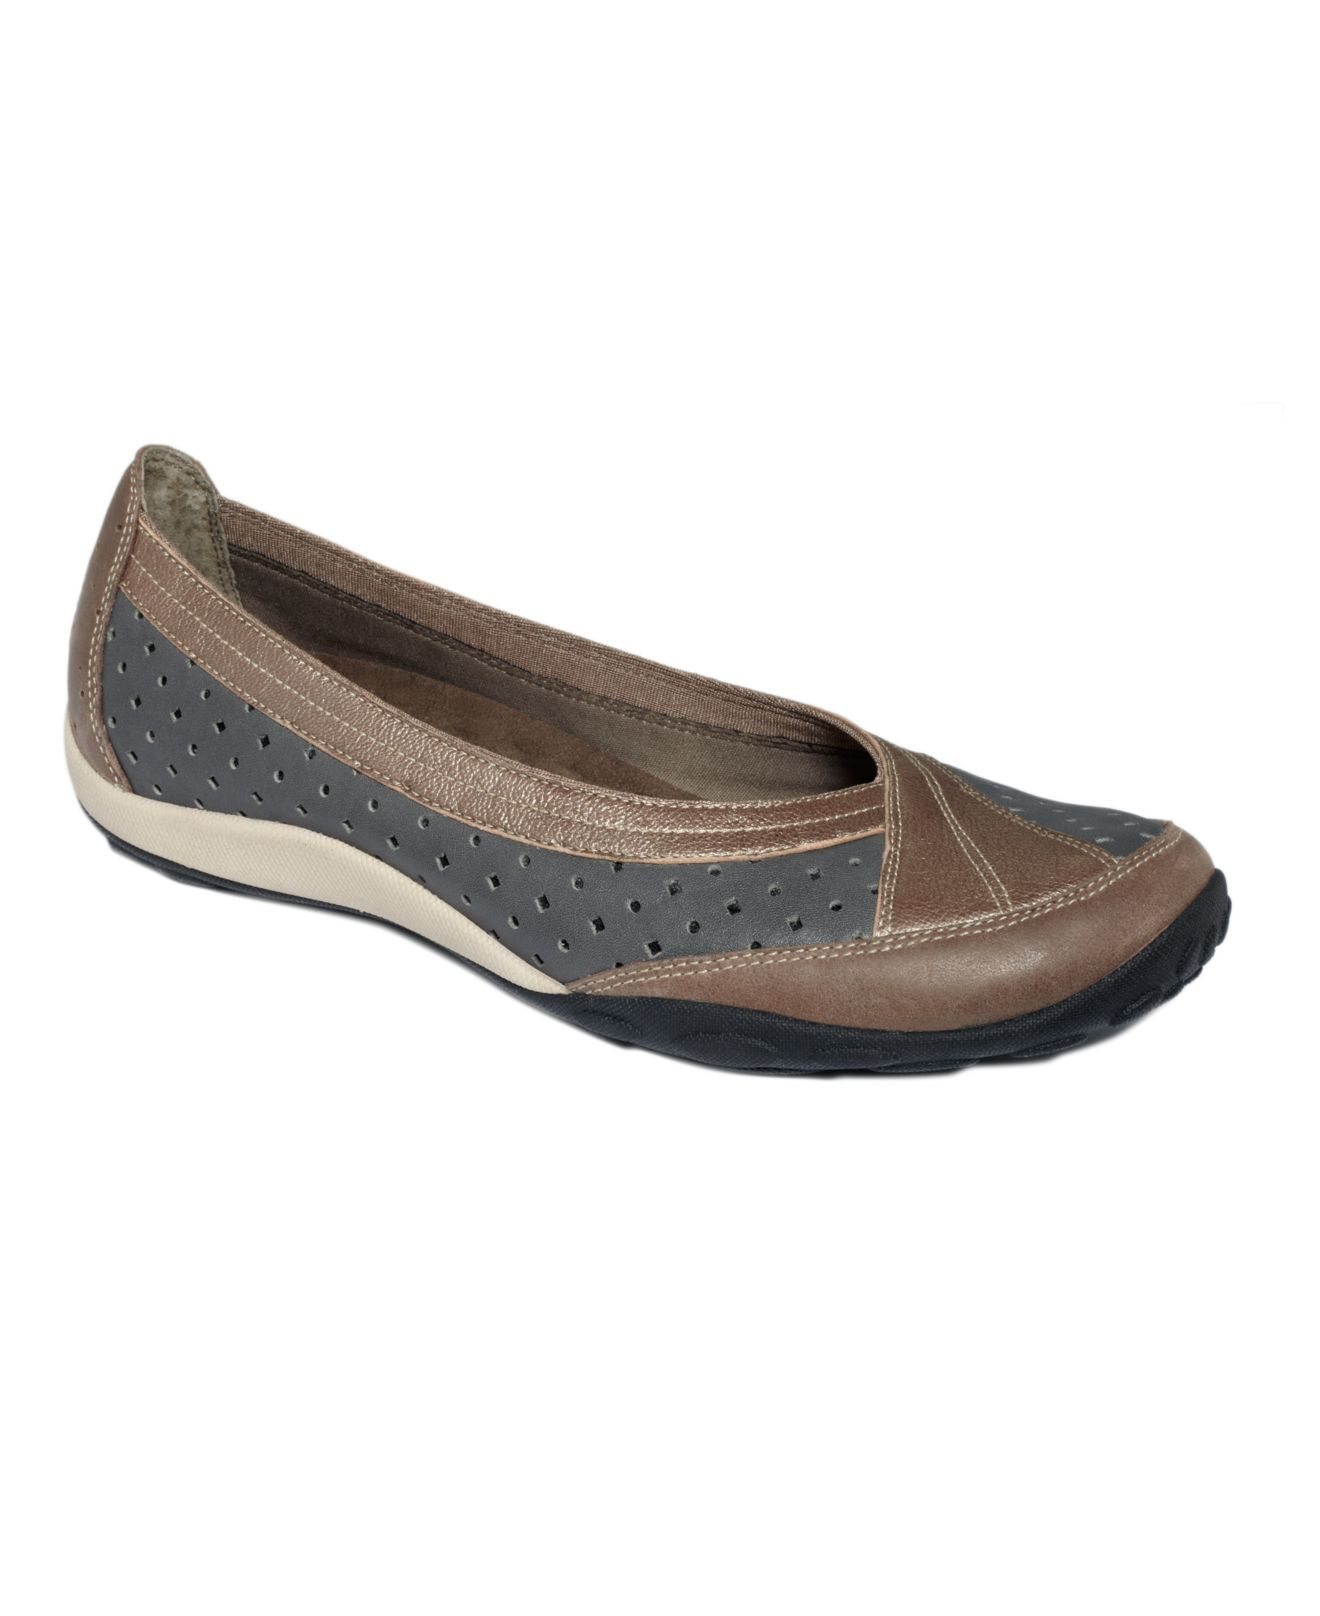 Discontinued Privo Shoes | privo by clarks joba women s